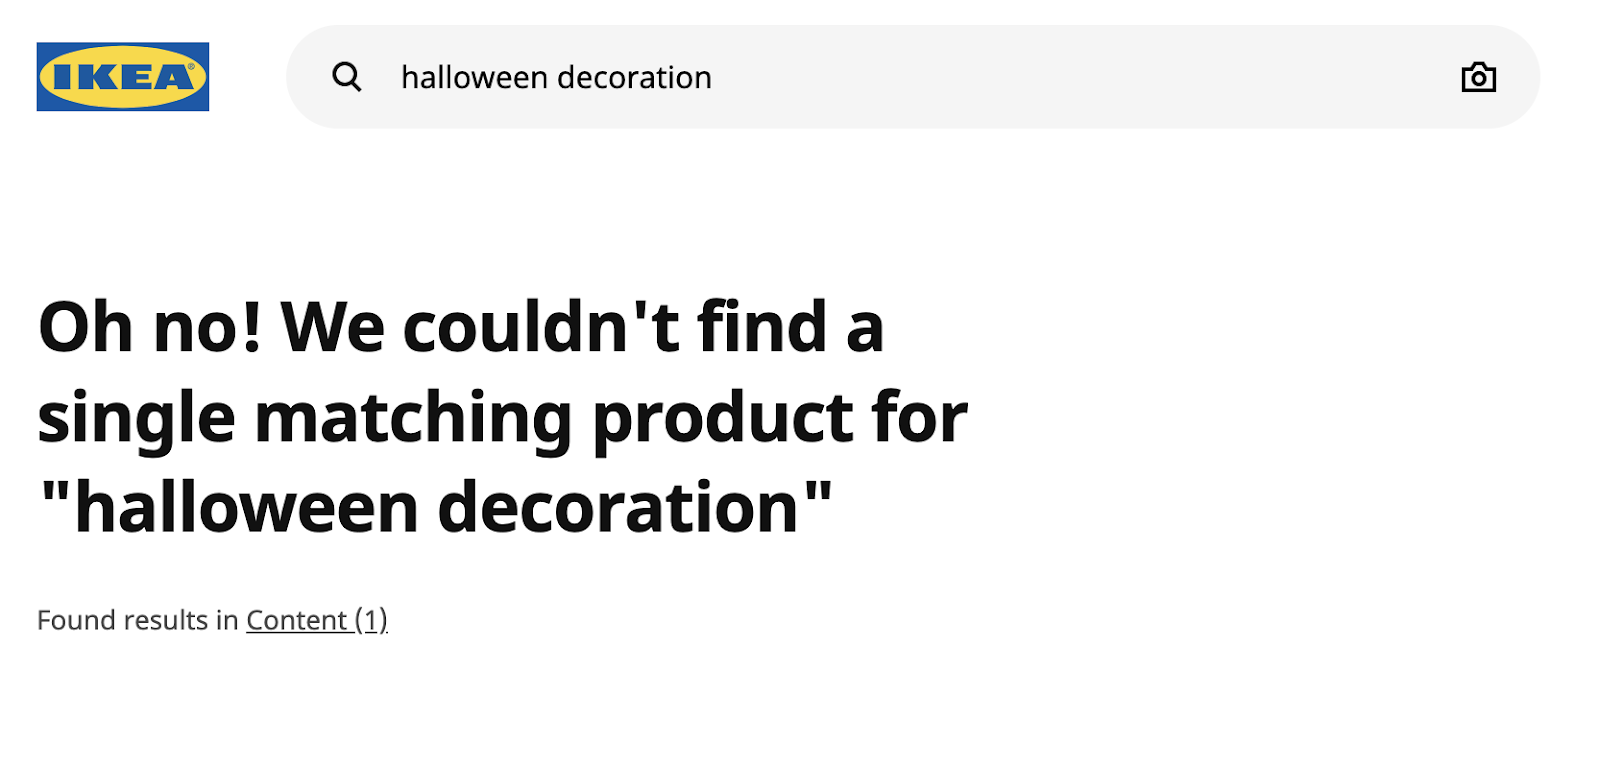 Ikea site search